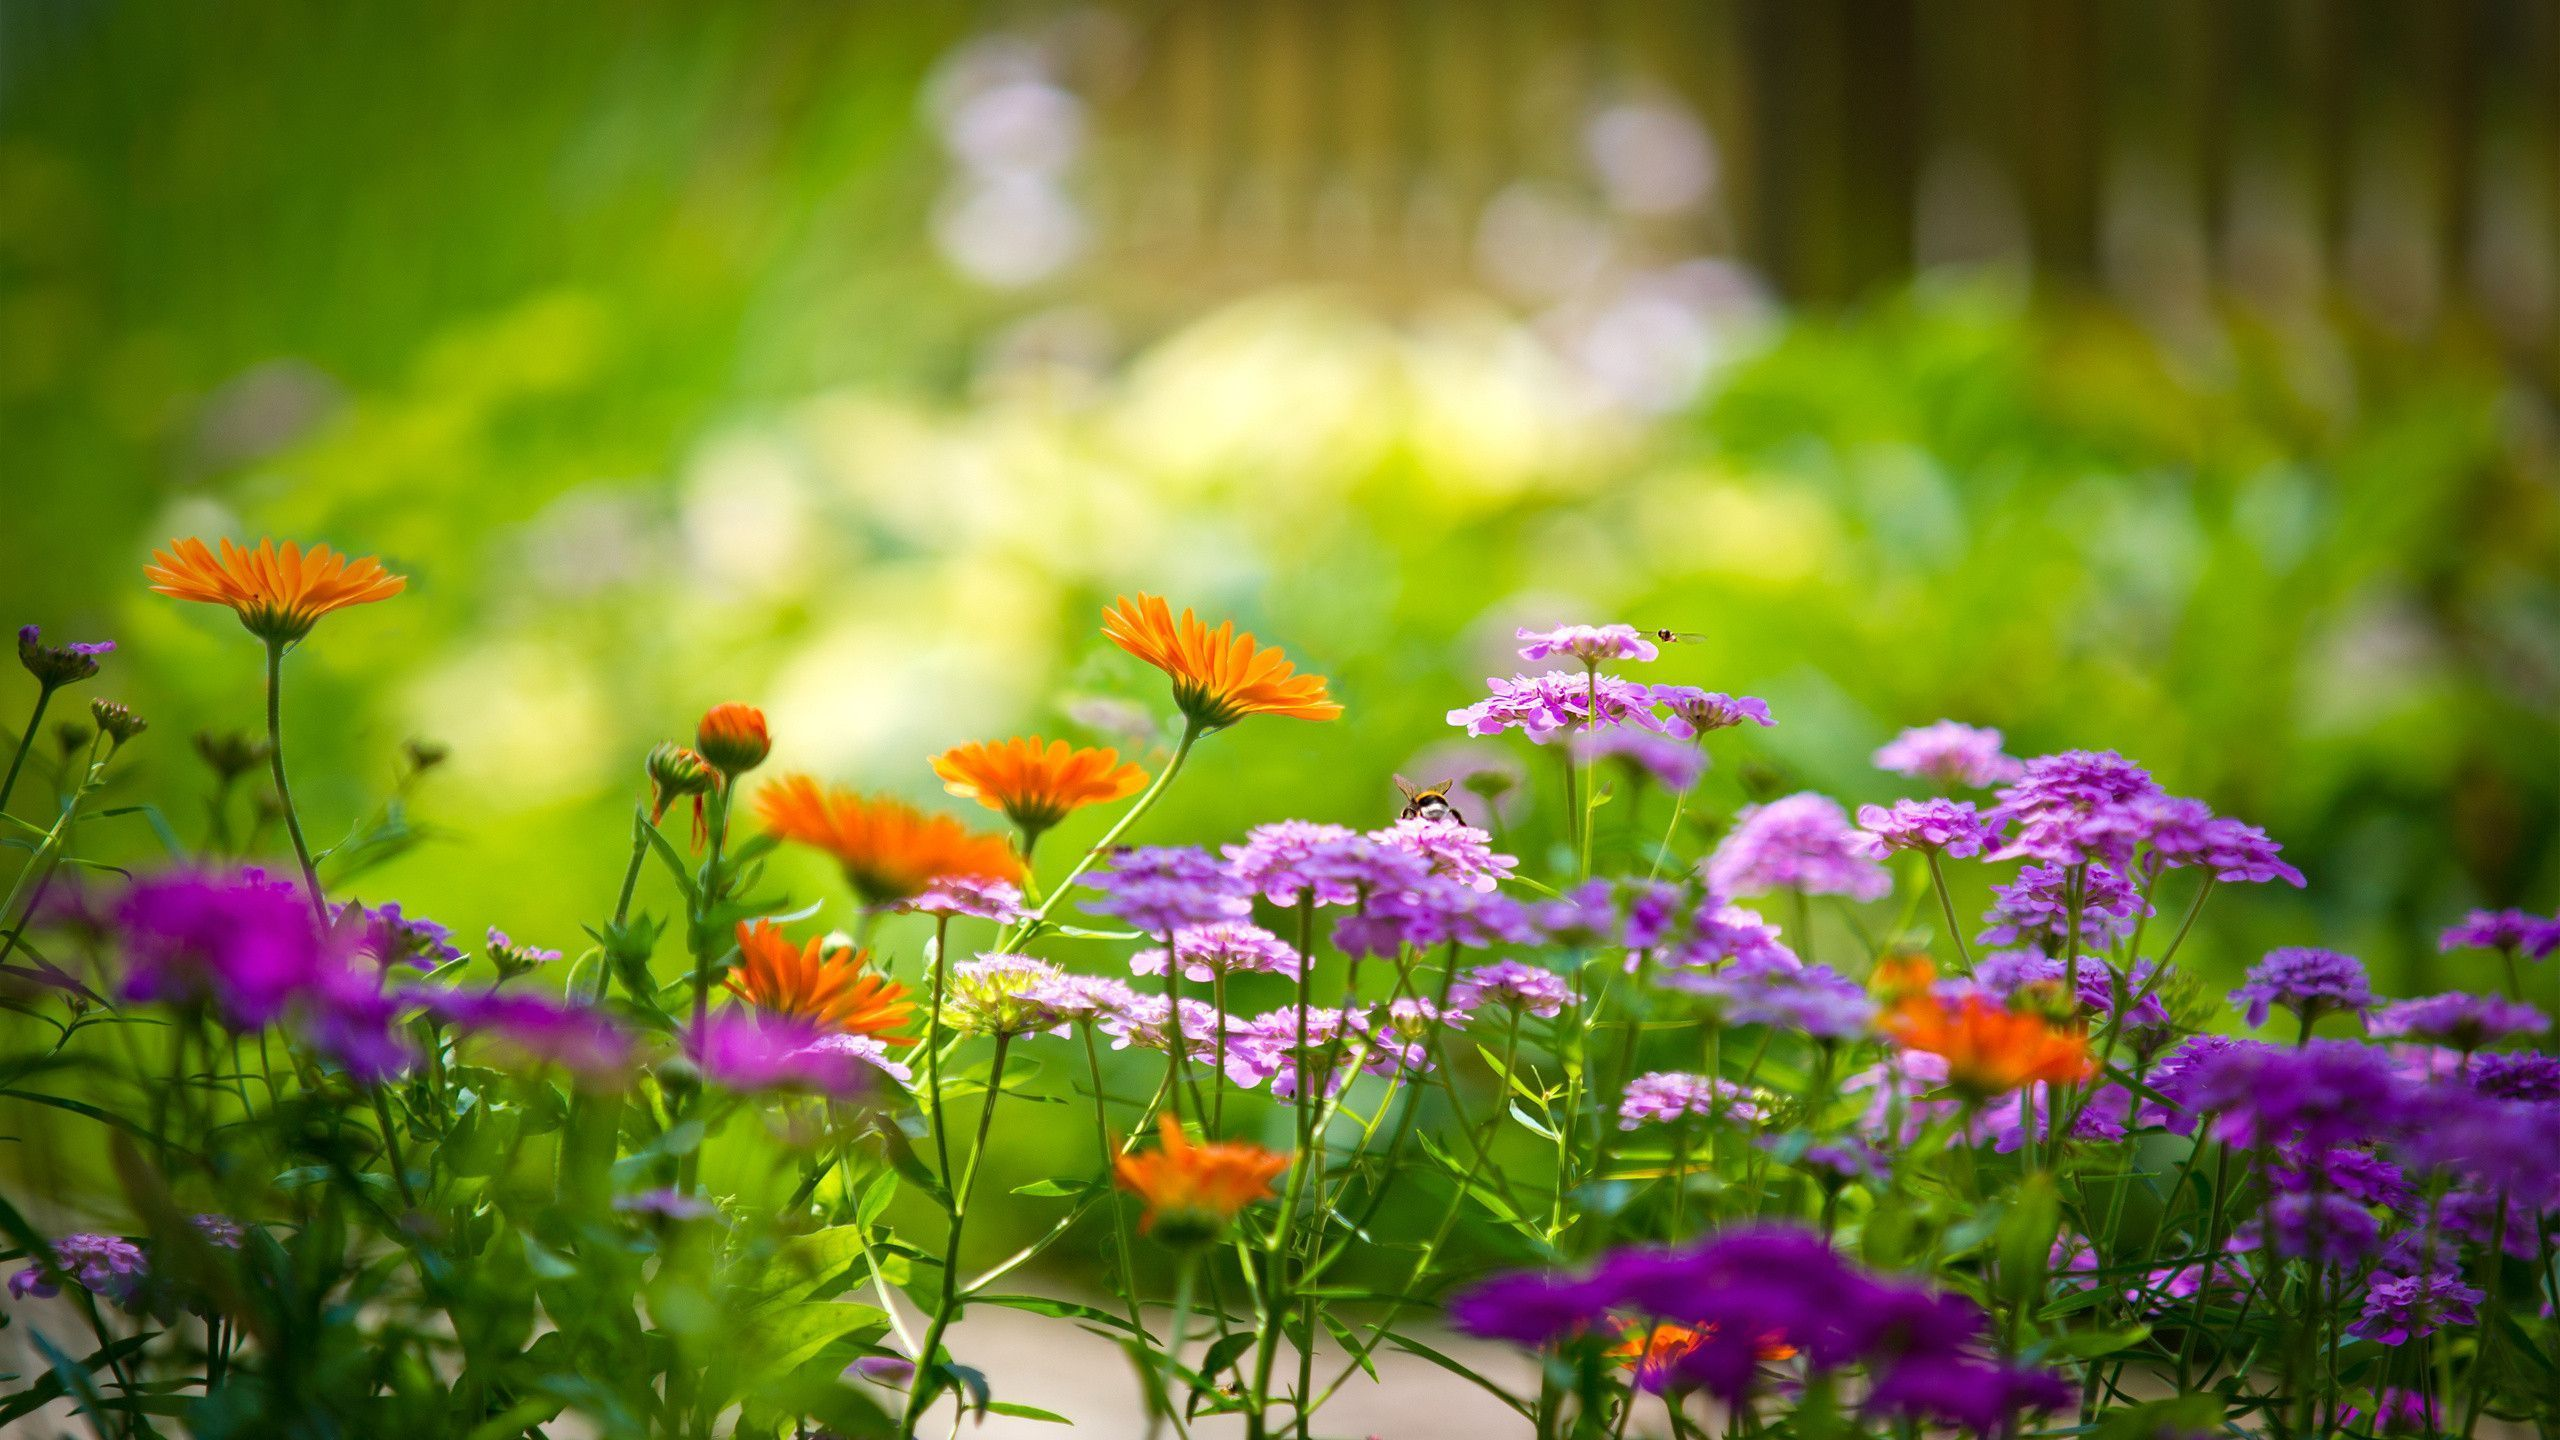 Hd Flower Garden Wallpaper 1920 1080 Flower Garden Backgrounds 48